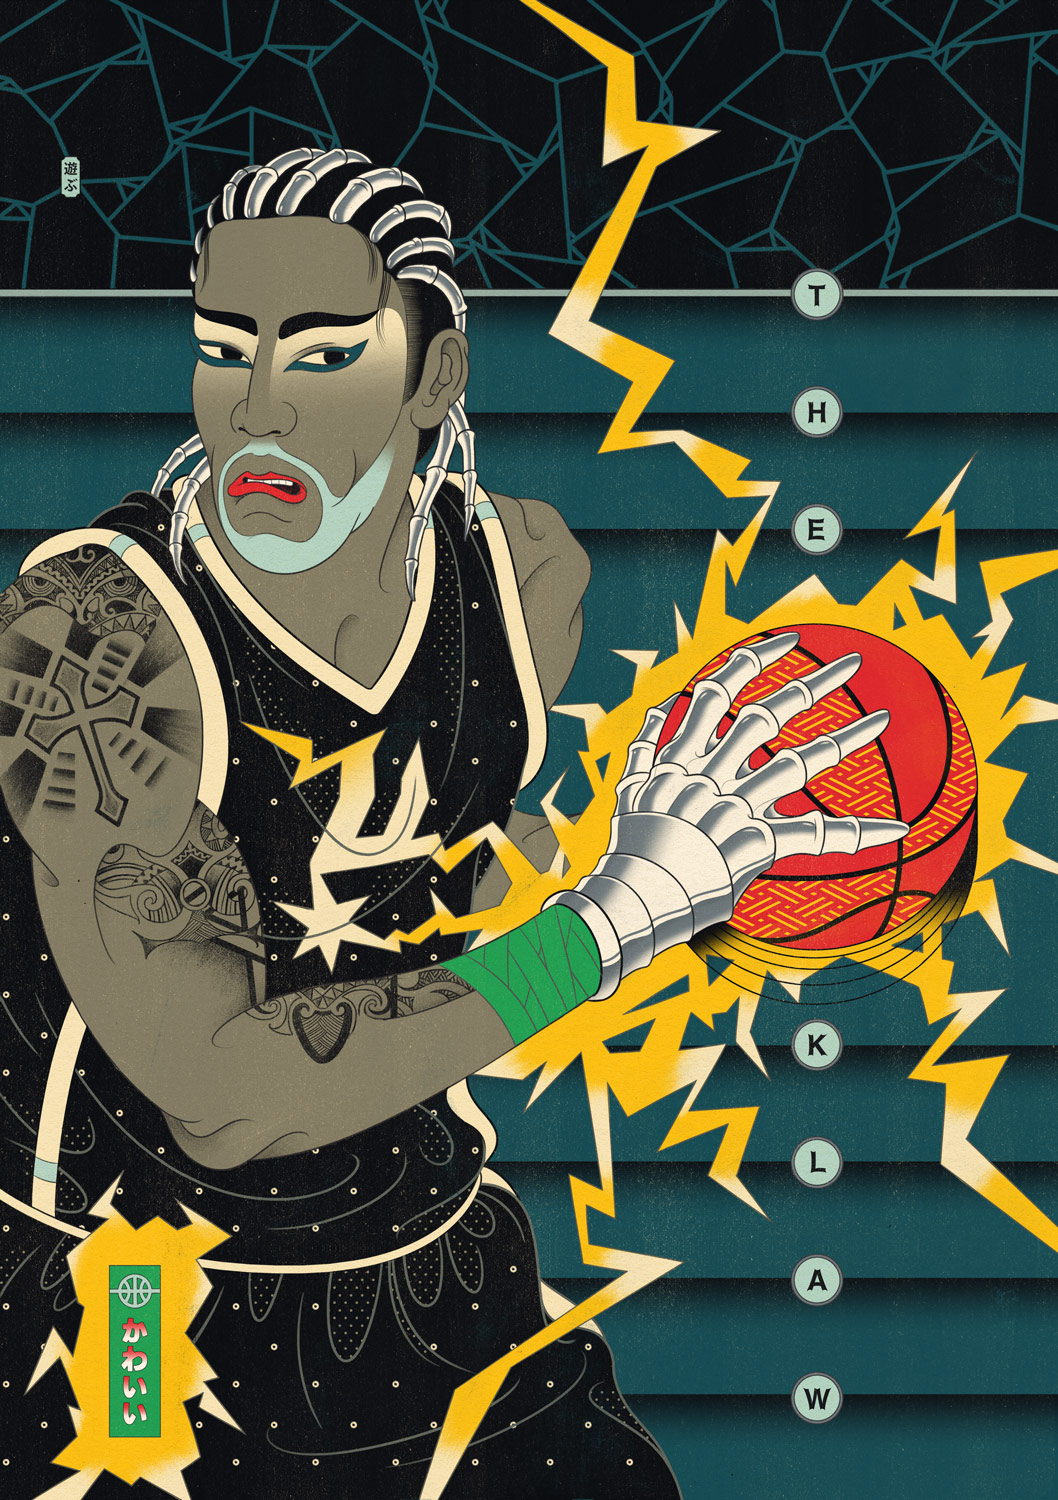 Edo Ball NBA Basketball Art - Kawhi Leonard The Klaw.